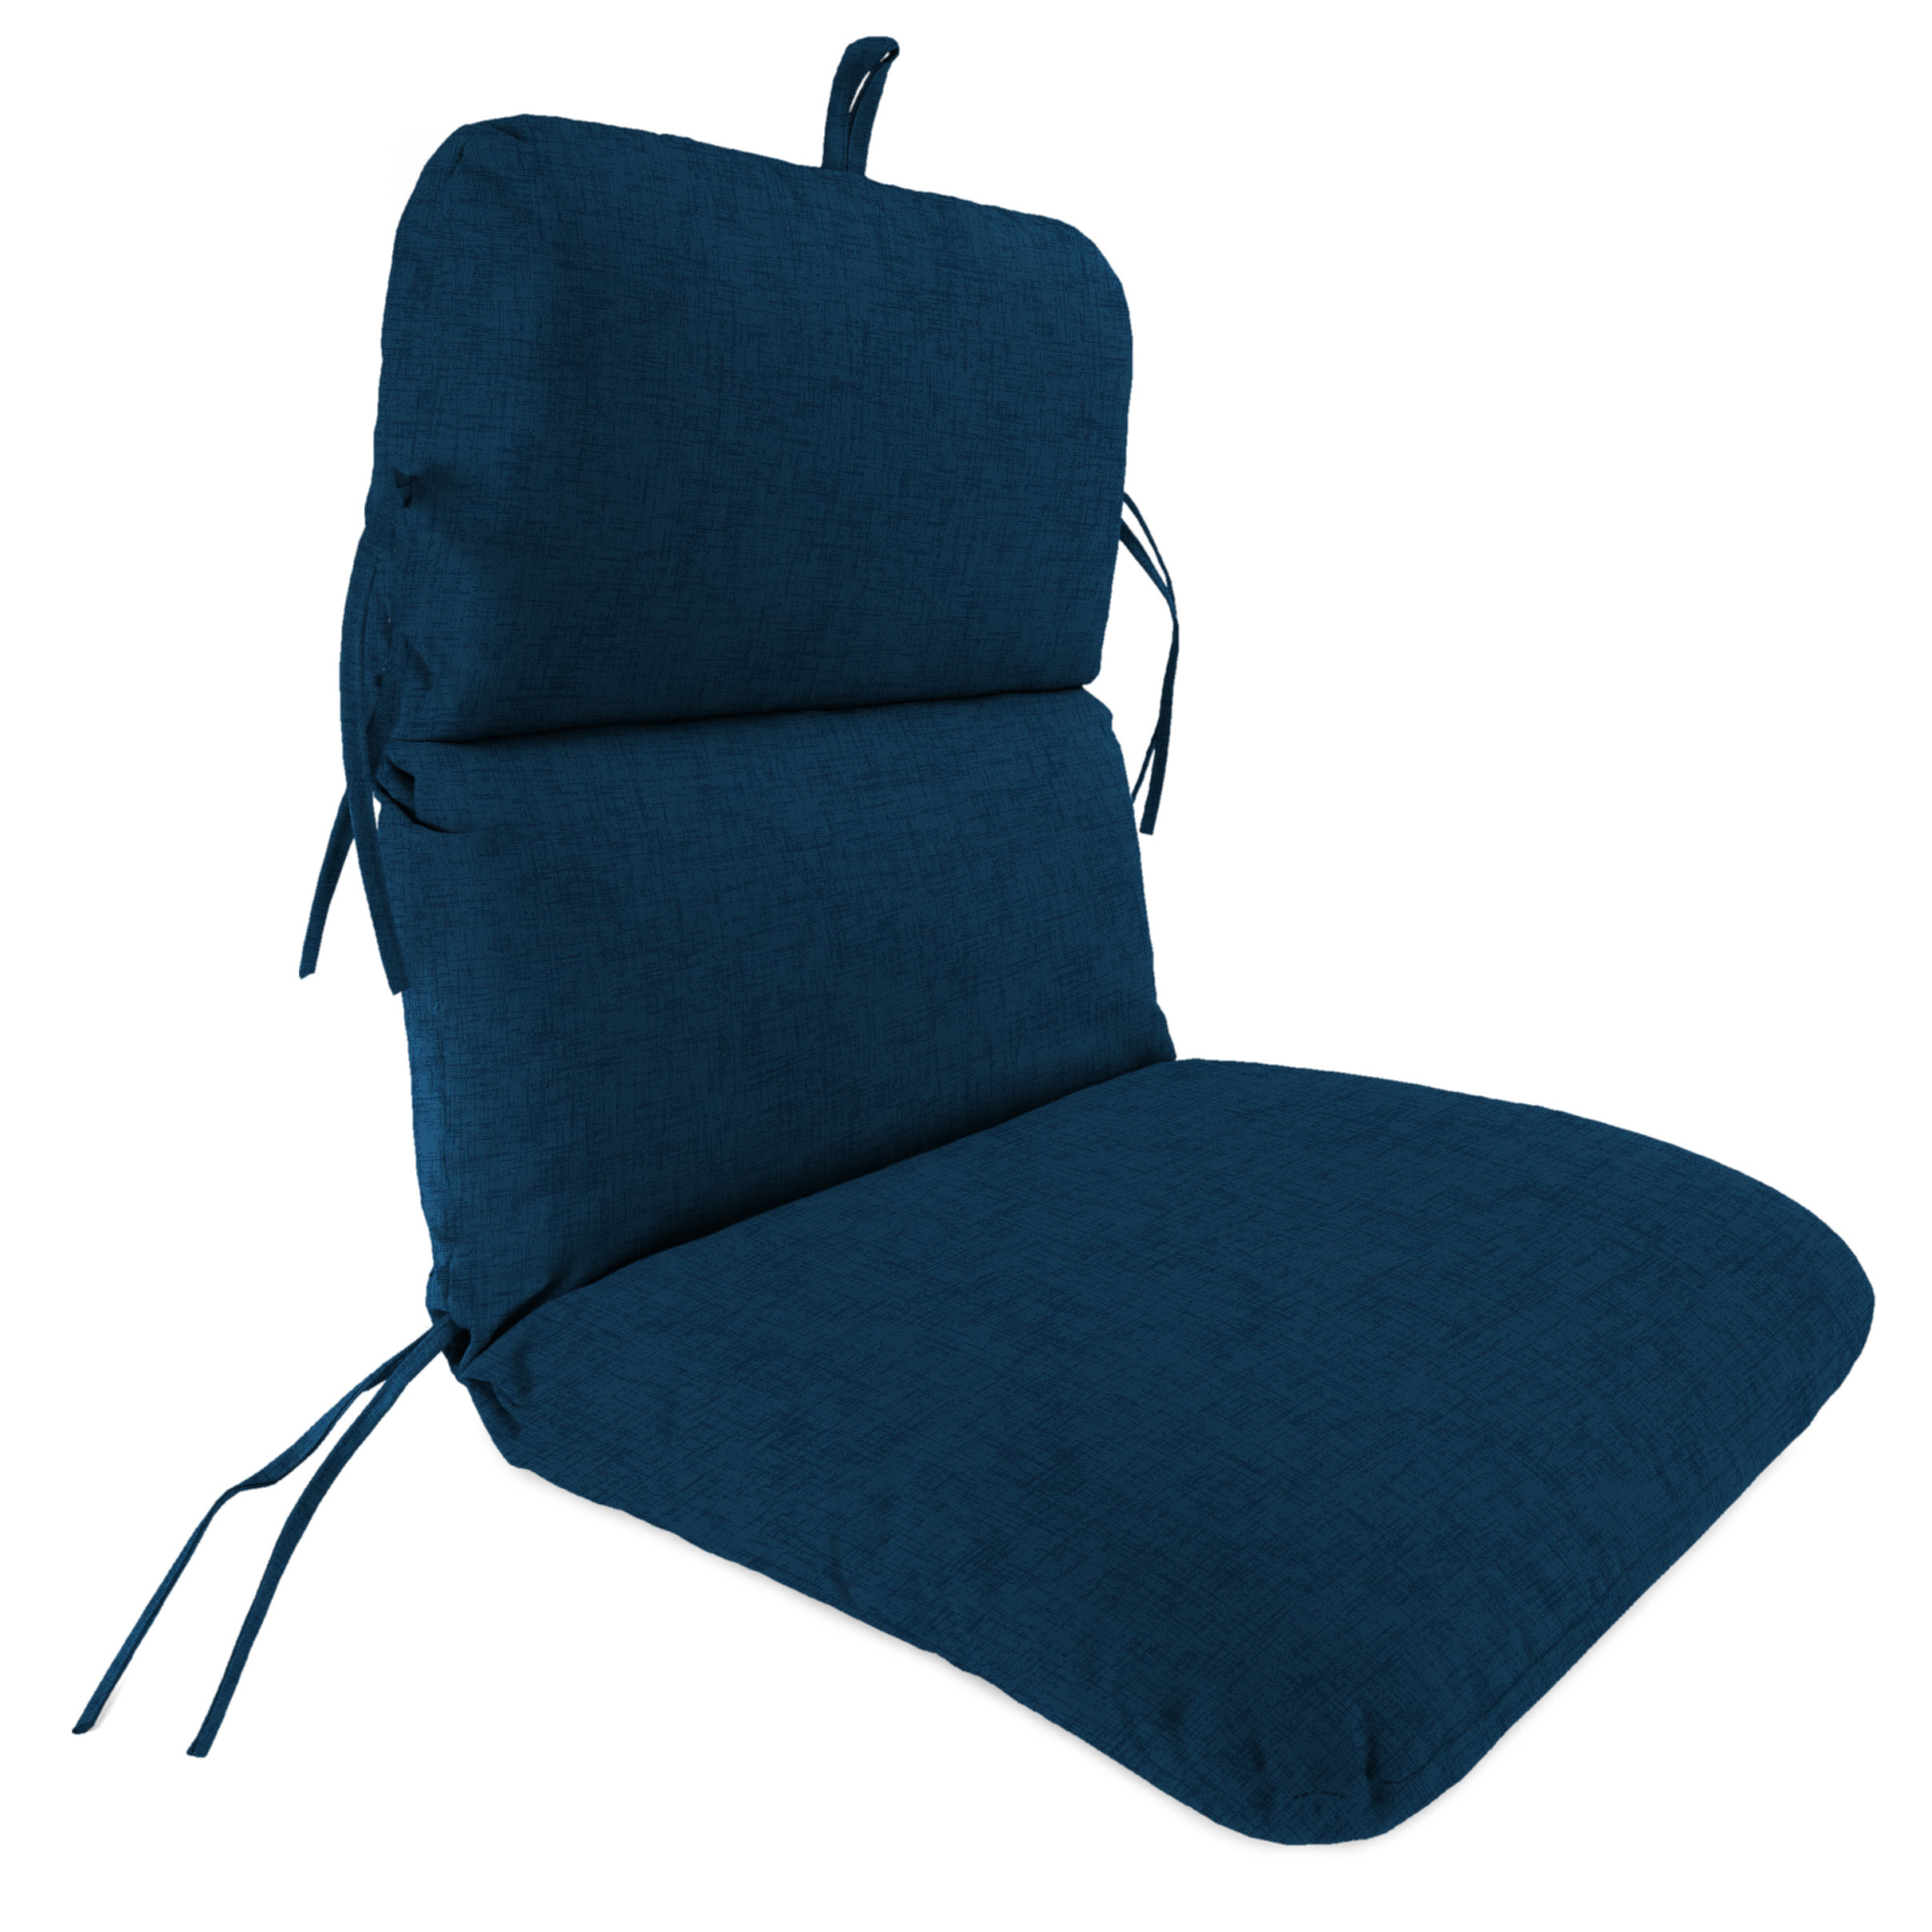 Bed chair pillow walmart - Bed Chair Pillow Walmart 26